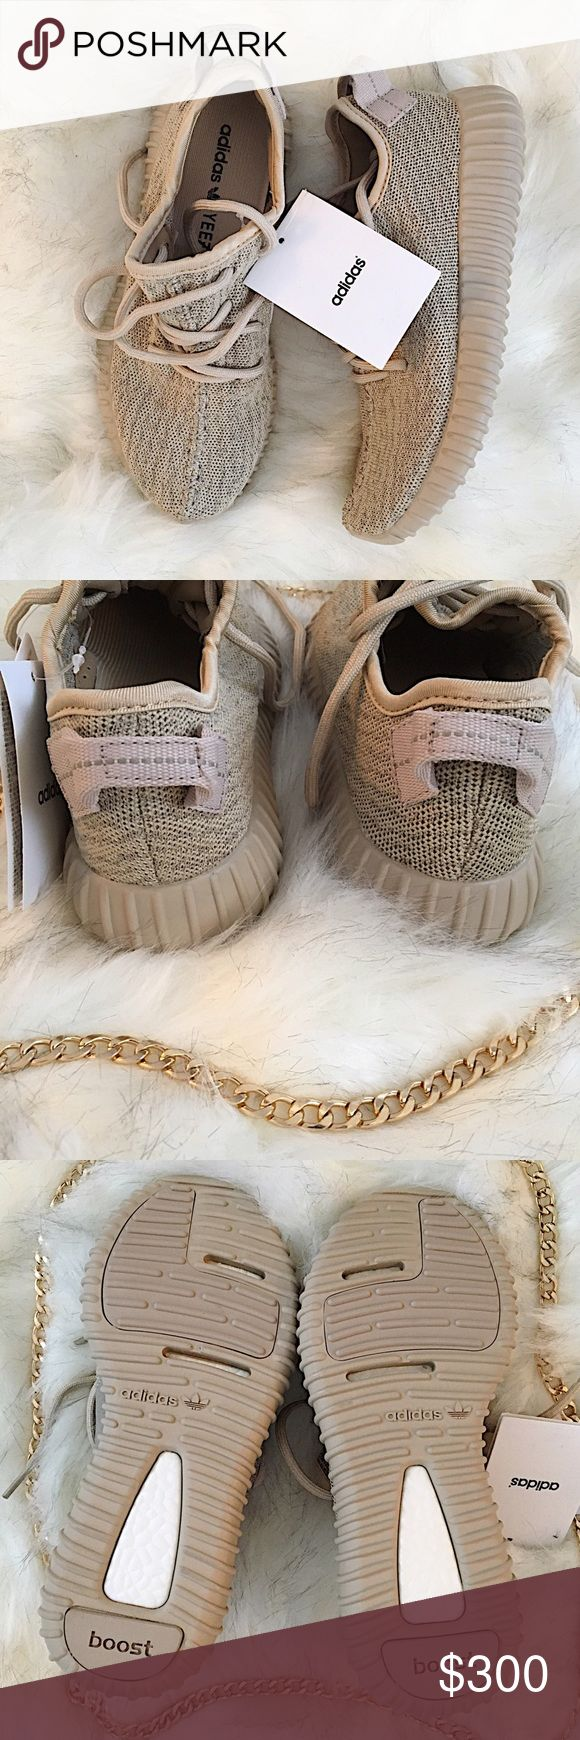 🔥Yeezy Boost 350 💣 What many consider the best and most wearable sneaker of the Kanye West x adidas line to date, the versatile low-top Yeezy 350 Boost is one of the most sought-after sneakers in the world. This has been the most unique color of the Yeezy line up.   💰Priced for its rarity and competition on other websites : listed for $2k+ on certain websites as shown above.  💐 NWT + 100% Authentic + Comes with box Yeezy Shoes Athletic Shoes